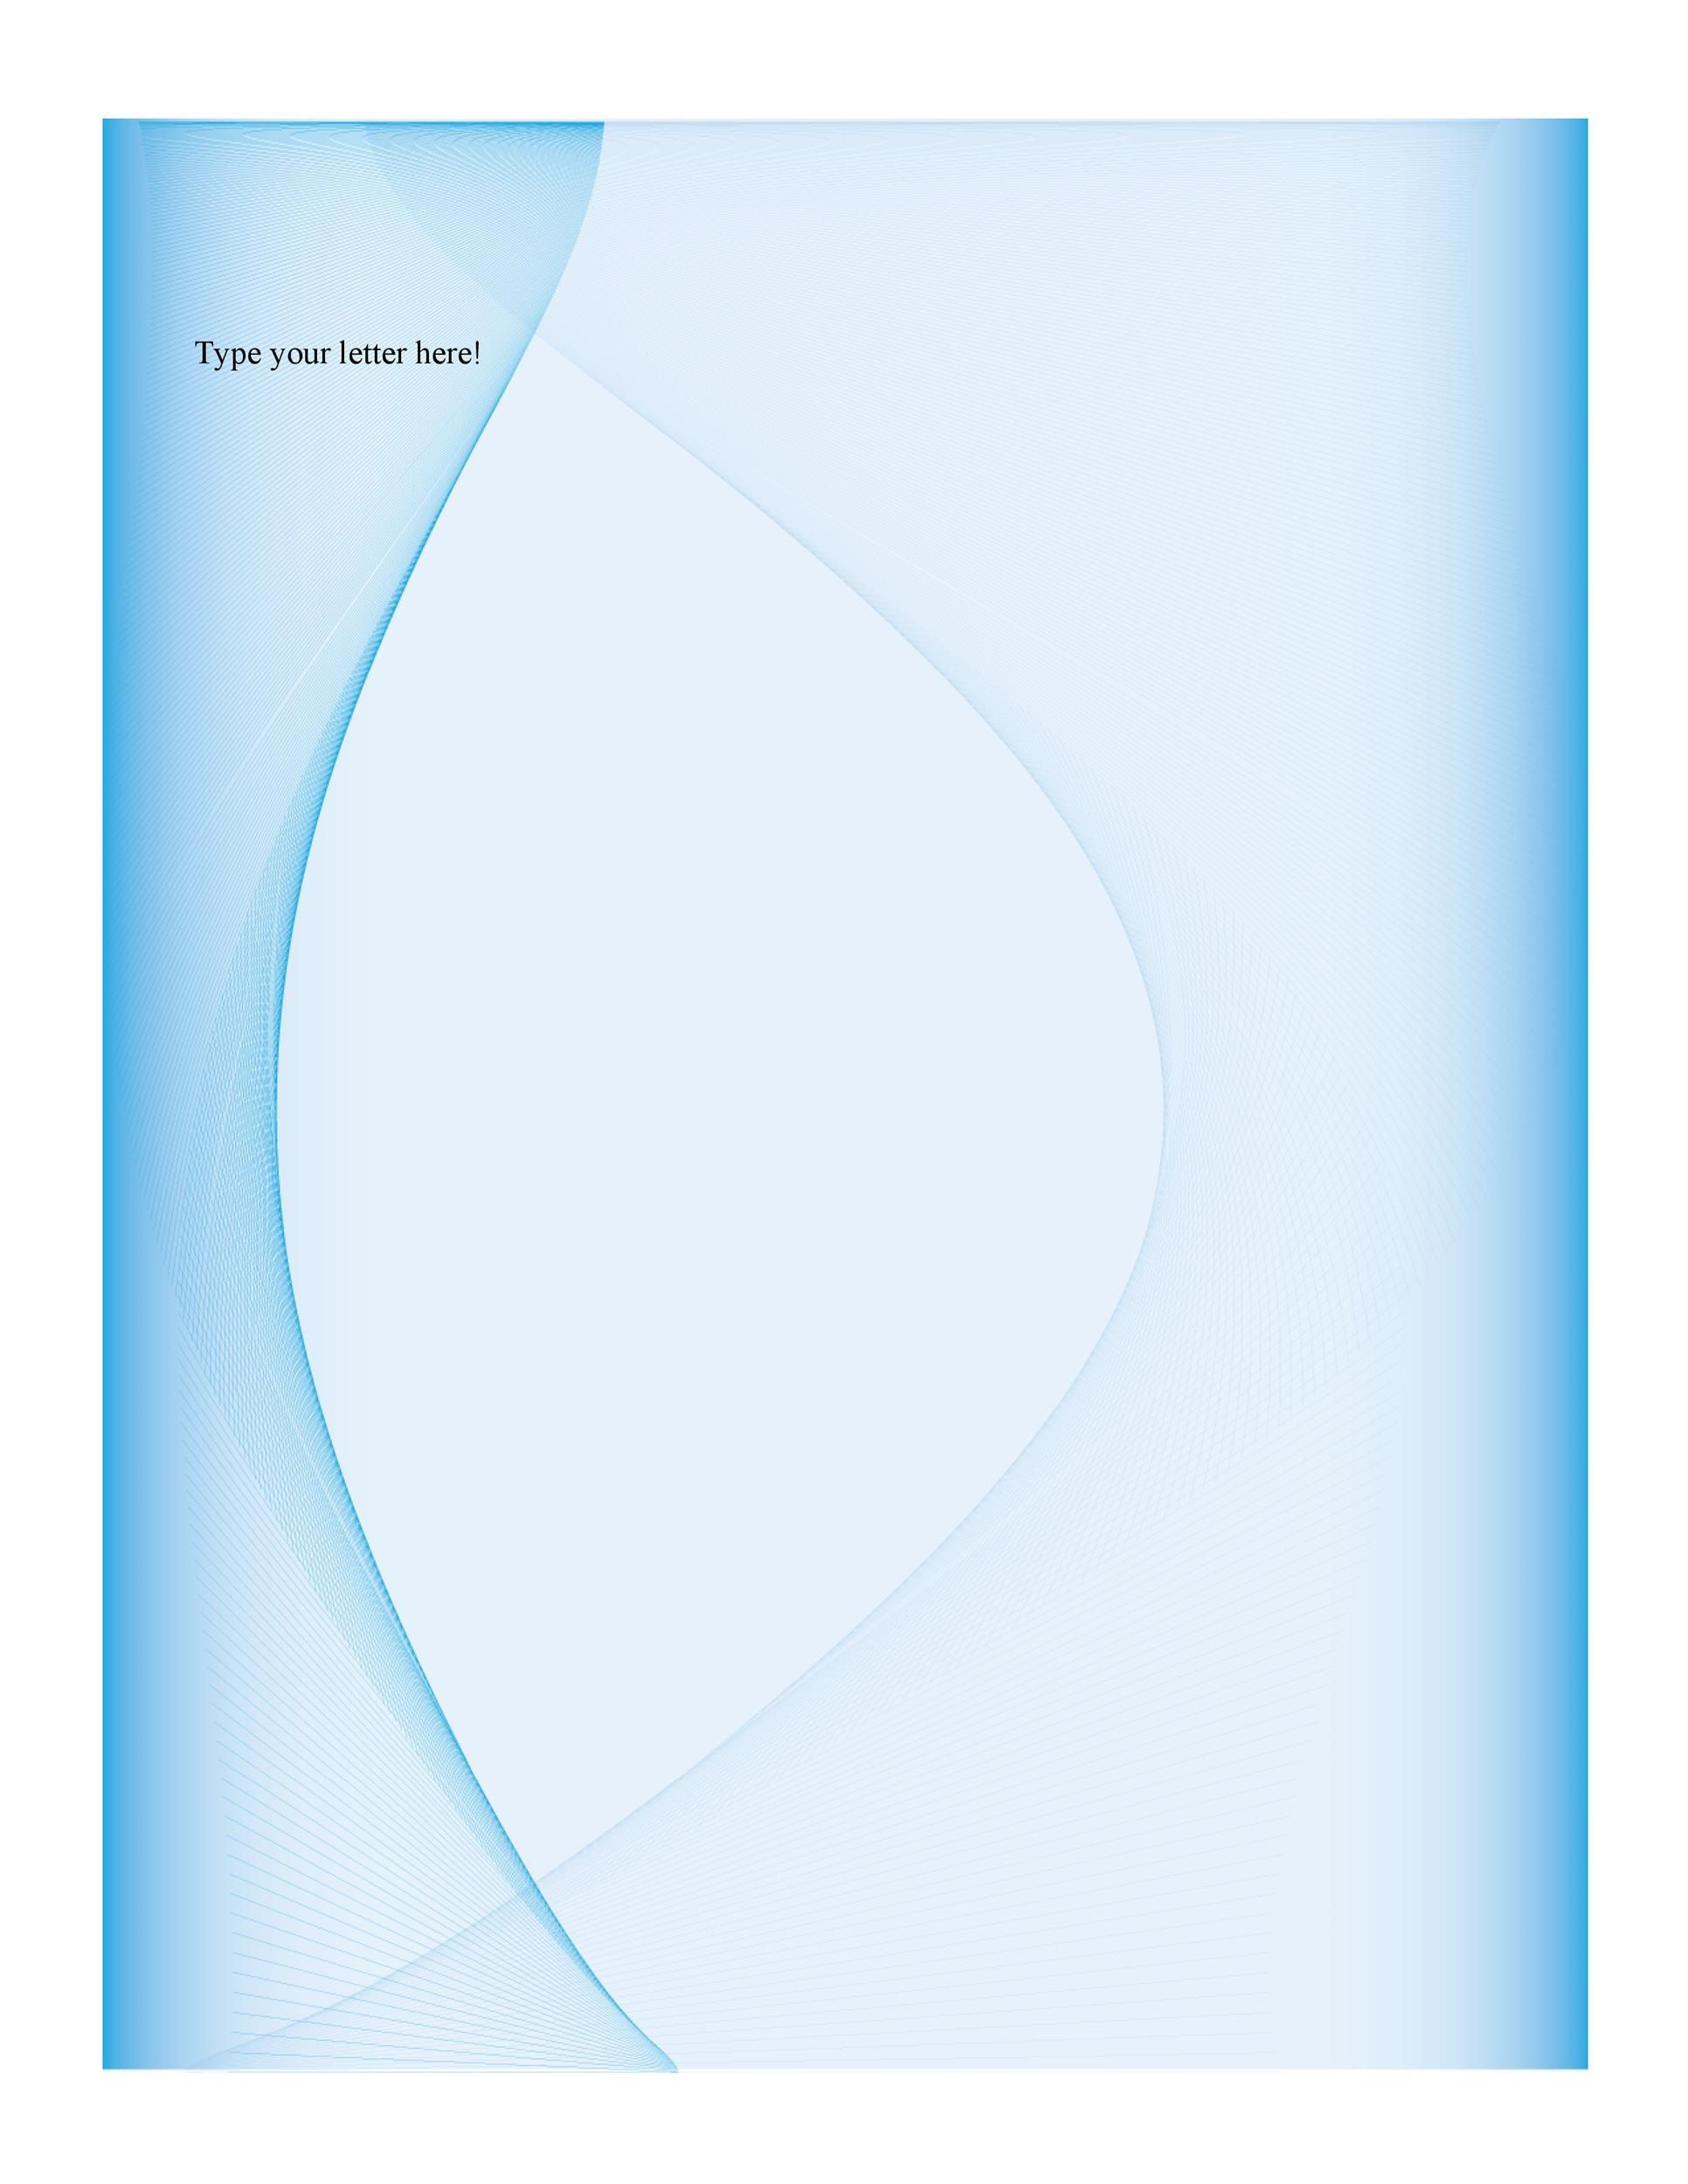 008 Magnificent Letterhead Format In Word Free Download Pdf Inspiration Full